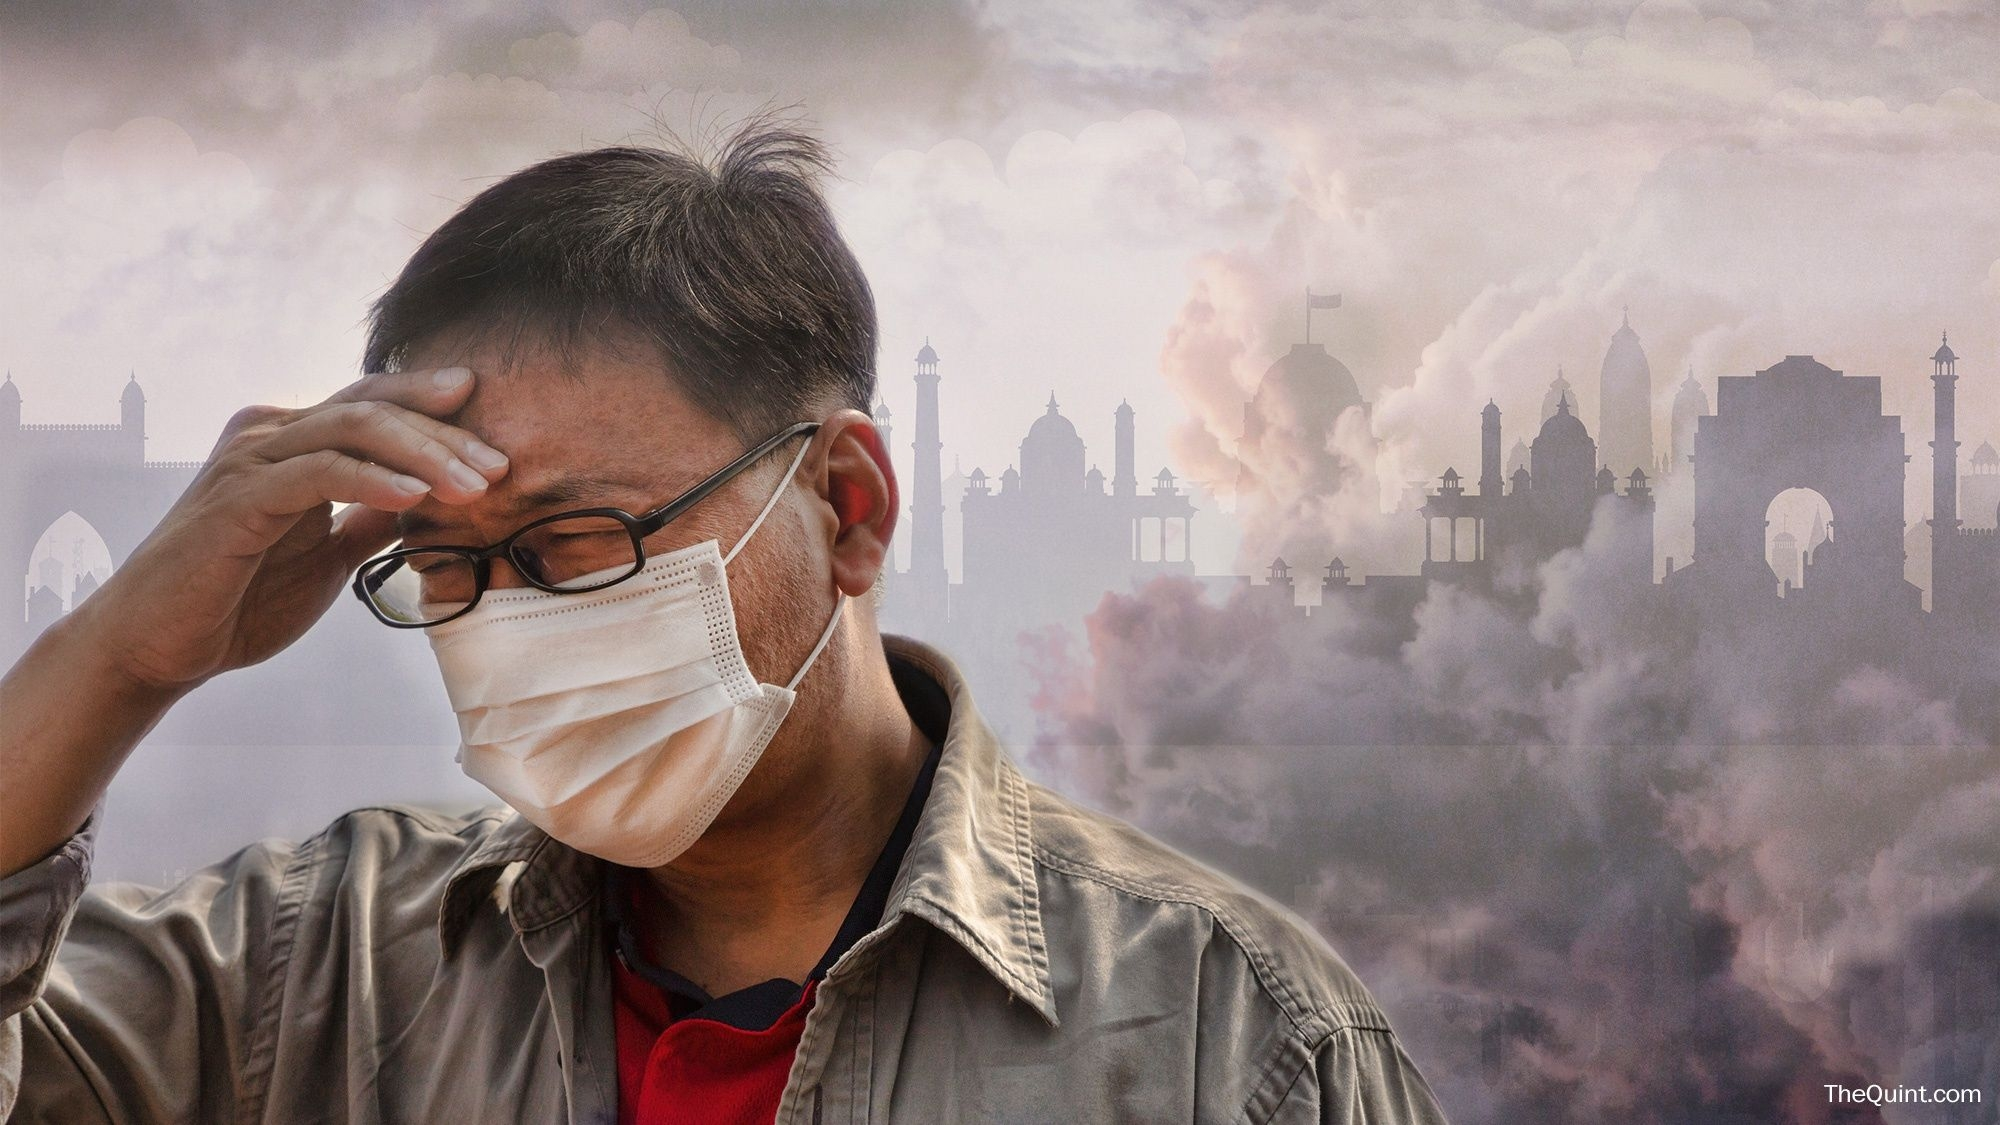 Brace Yourselves Delhi, The Air Quality Is Set to Be Very Poor